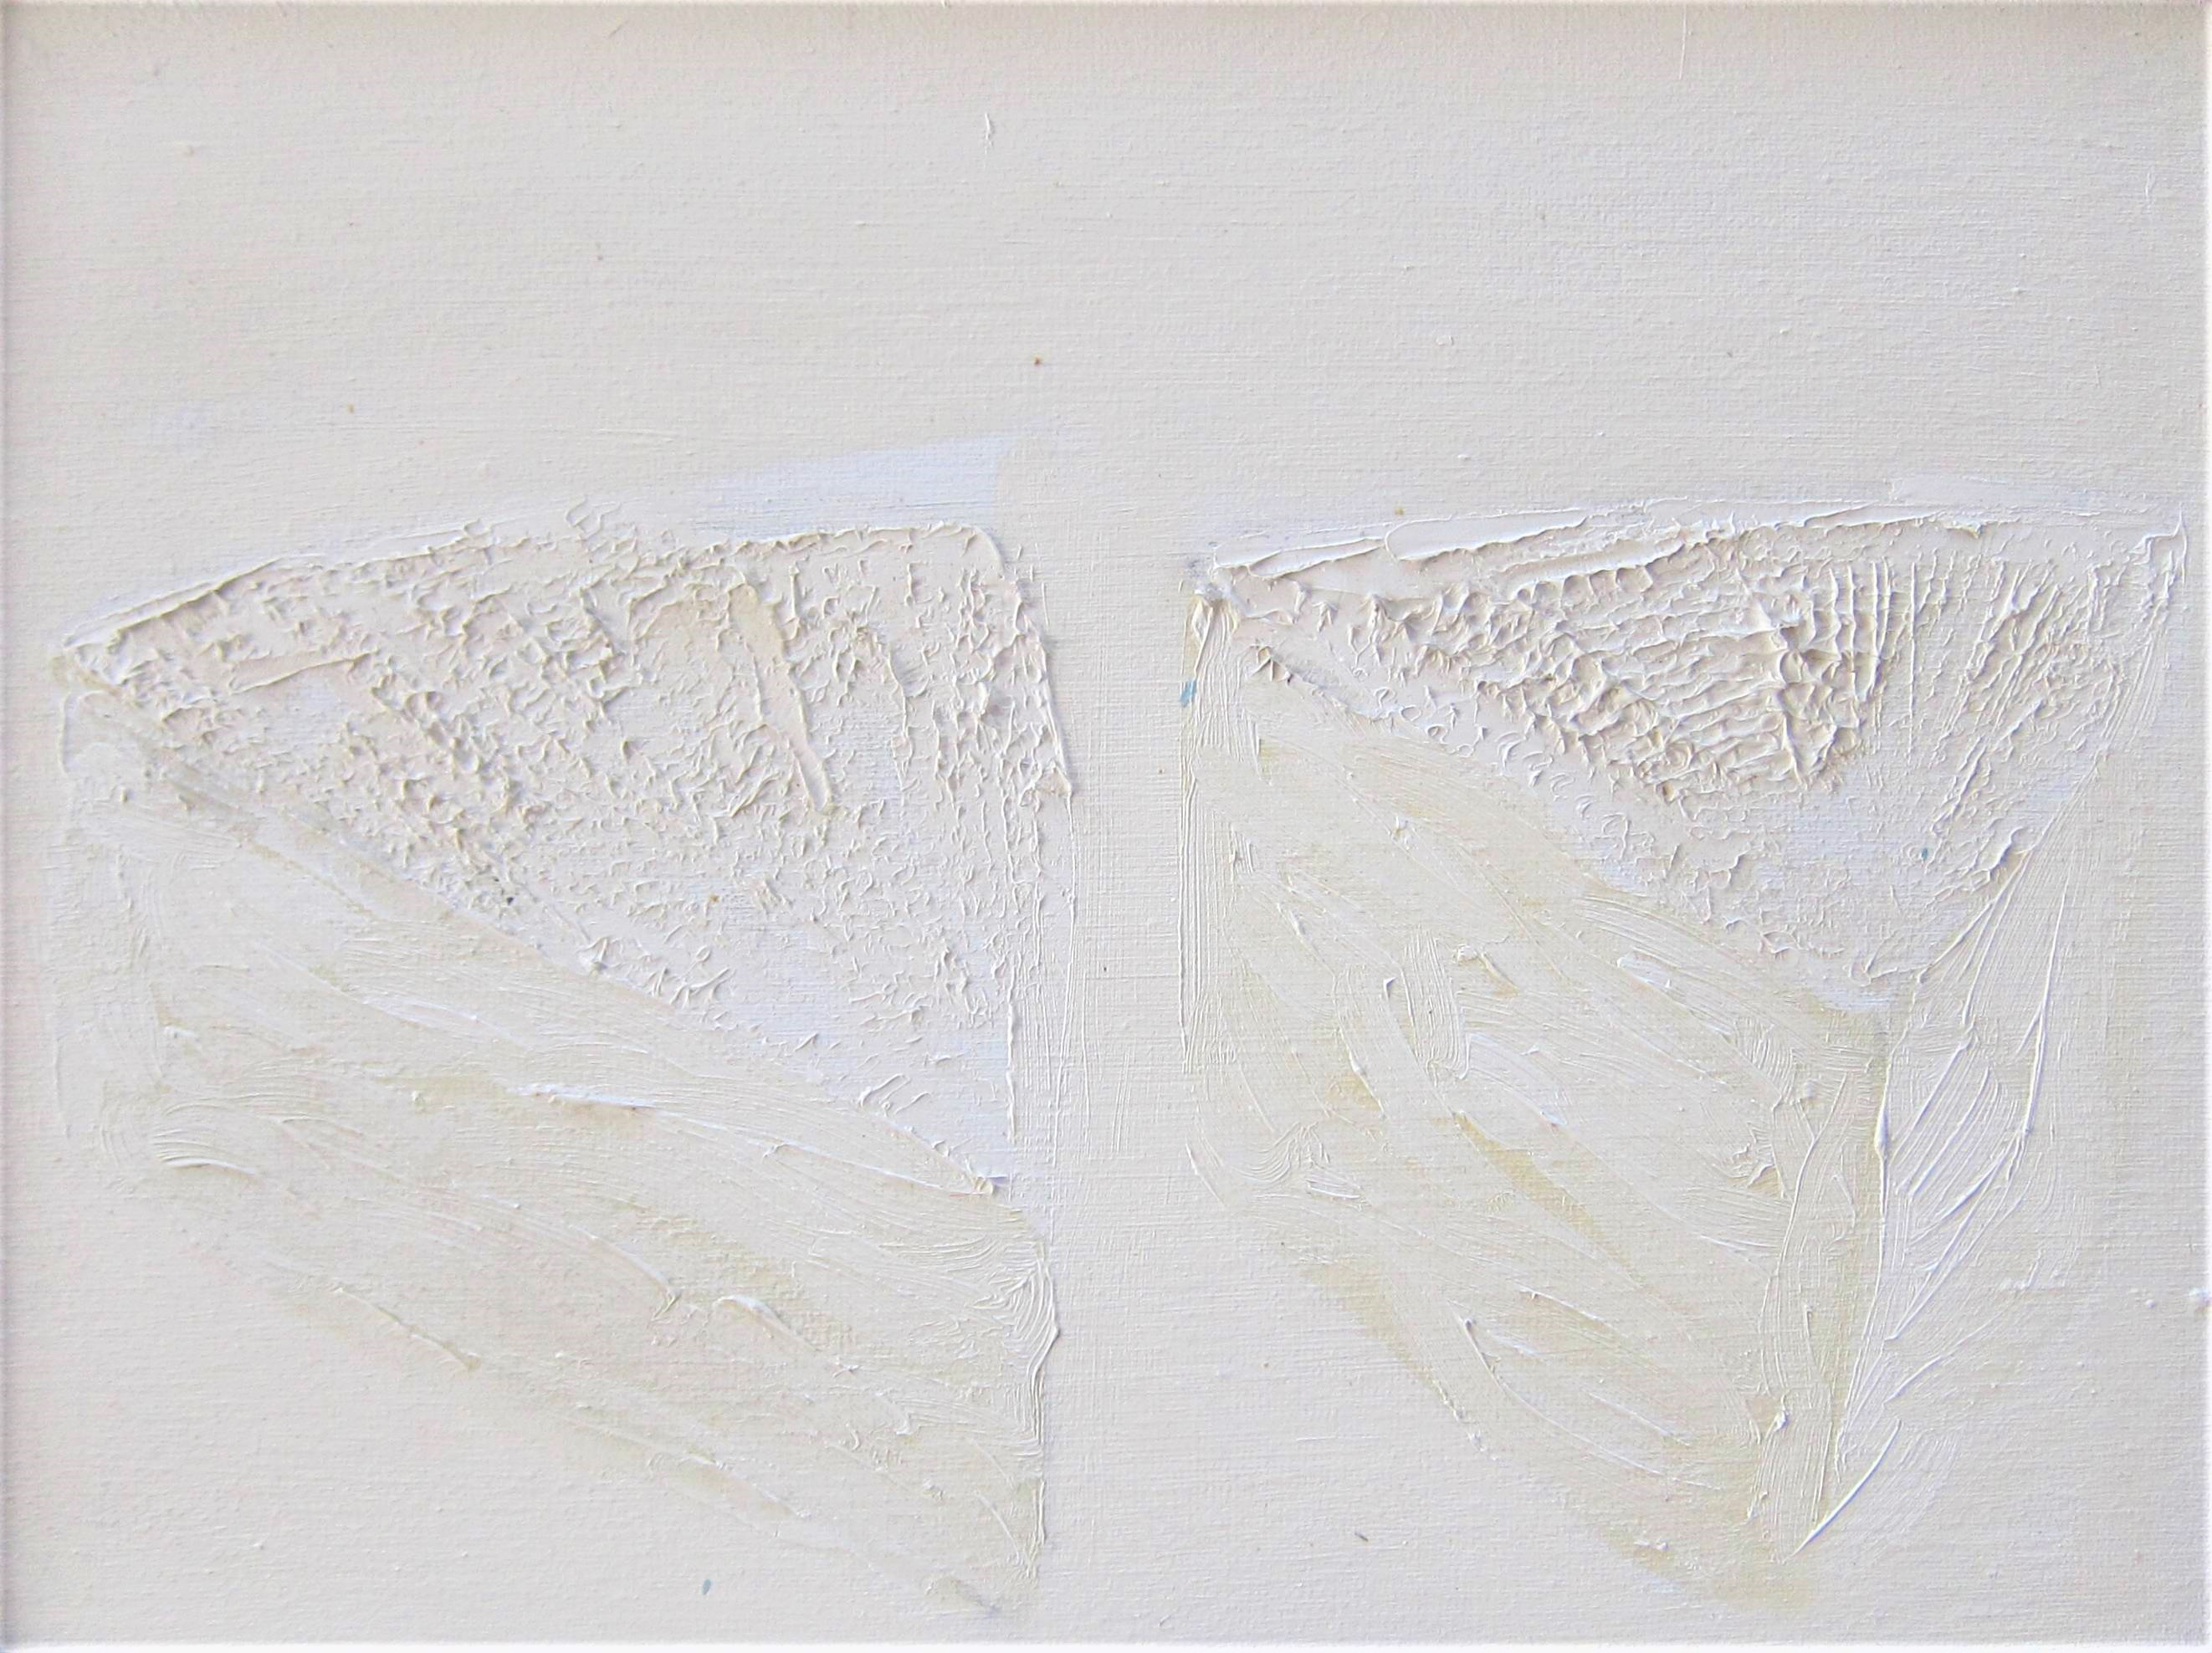 KIT BARKER [1916-88]. 2 Pieces of Brie, 1984. oil on canvas. signed on reverse. 31 x 41 cm - overall